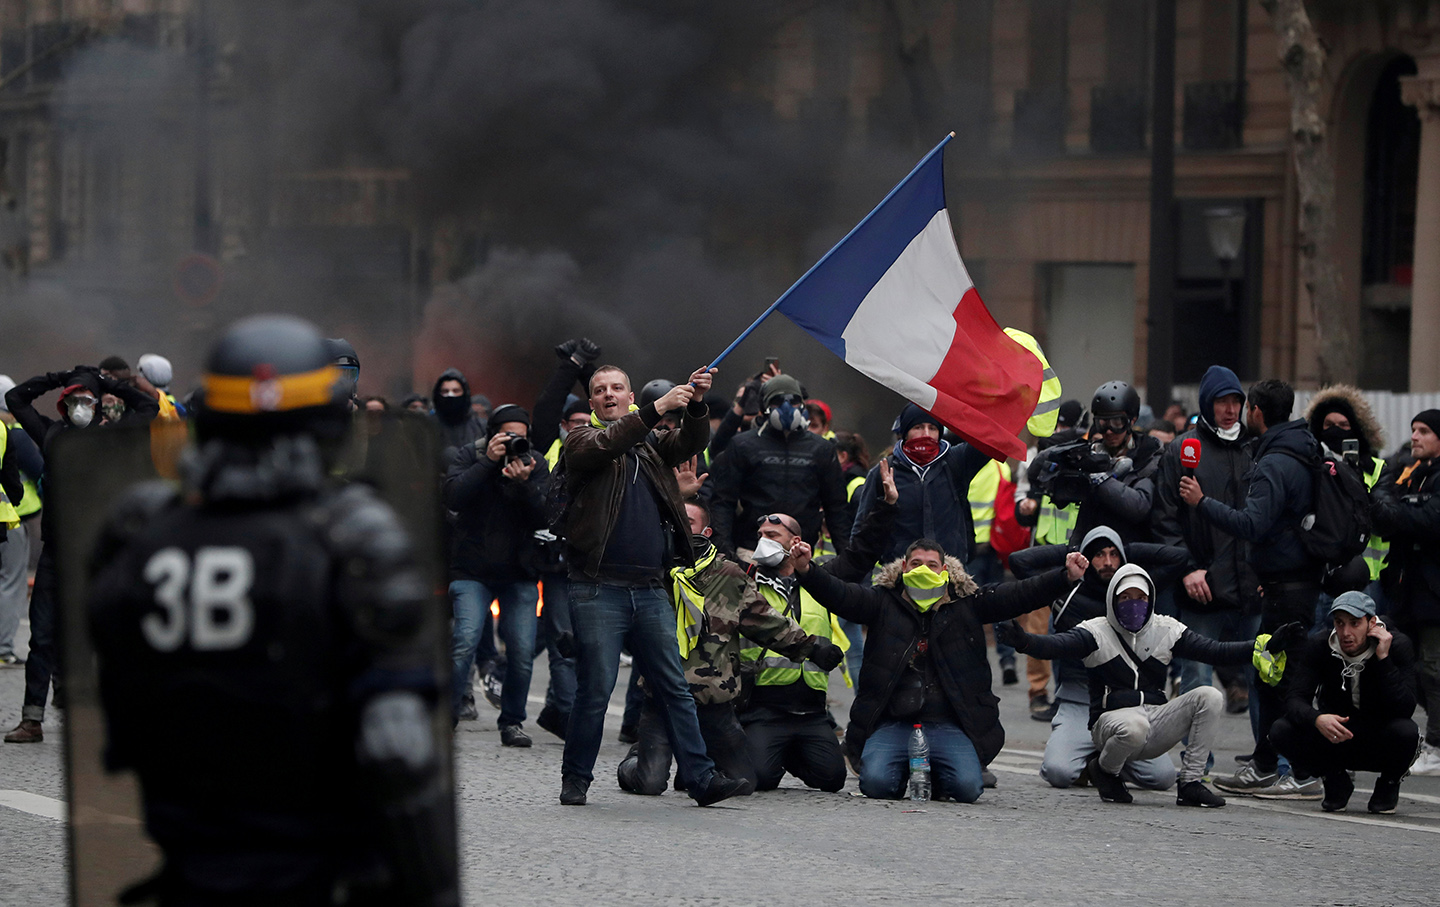 A protester waves a French flag during clashes with police at a demonstration by the